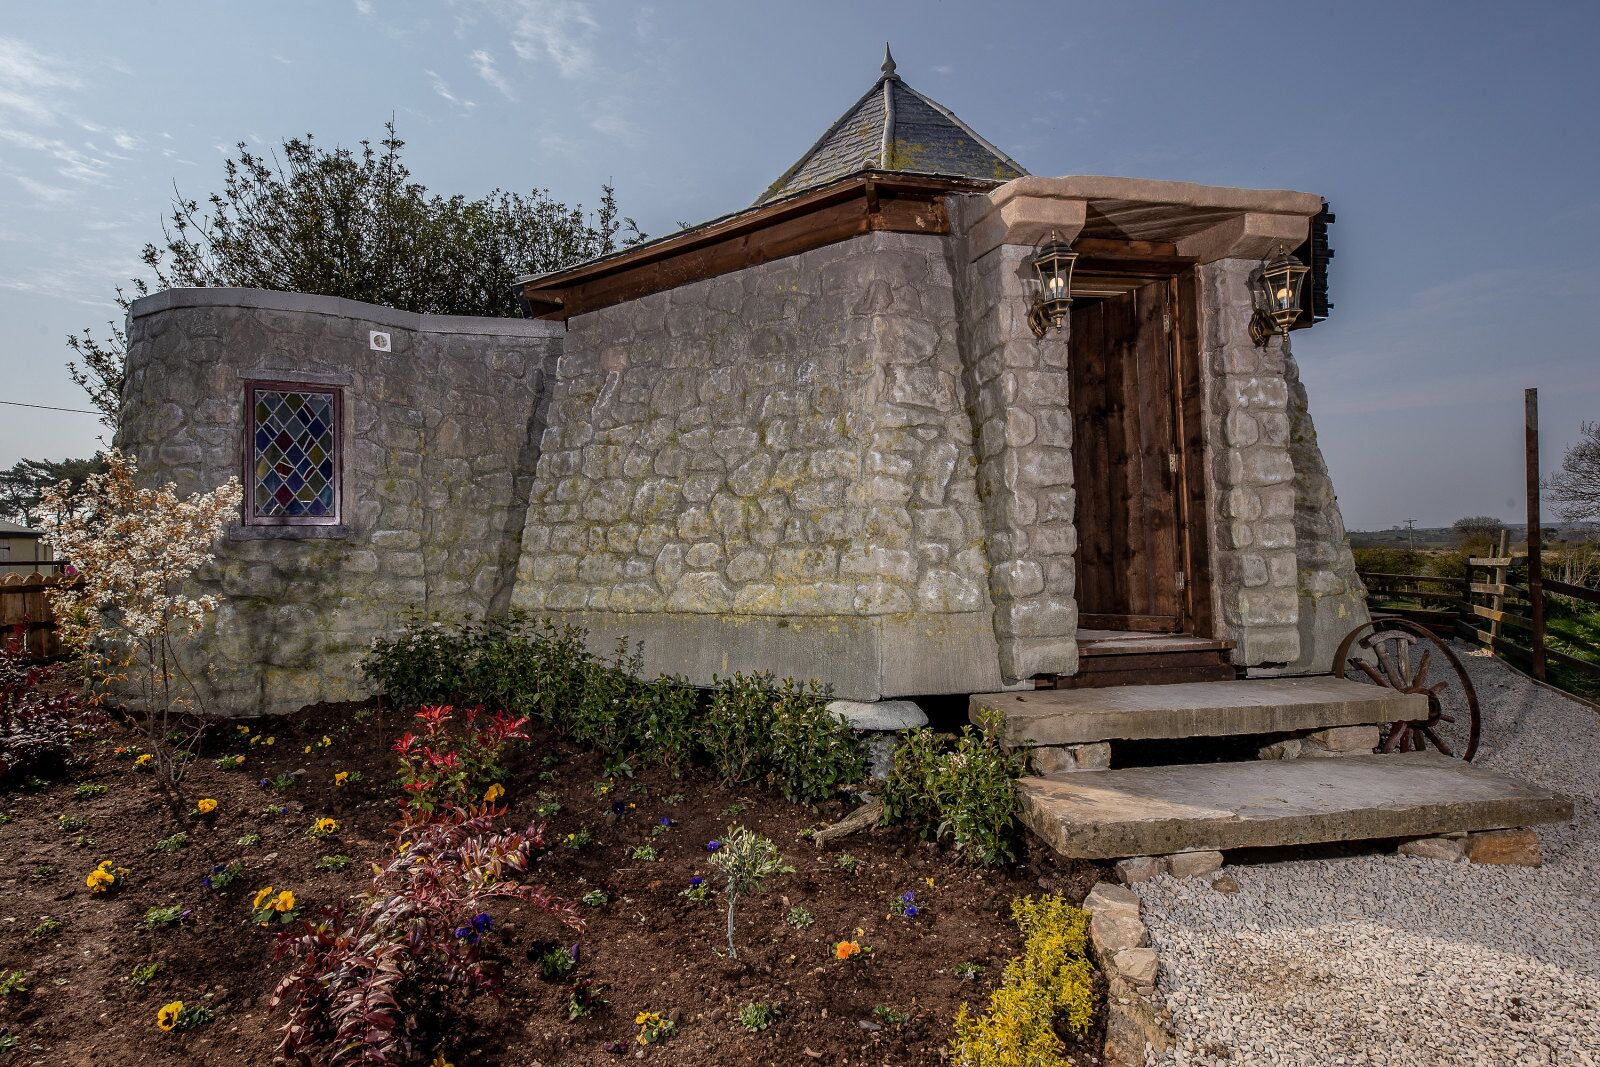 Stay in Harry Potter's Hagrid's Hut replica for just £1